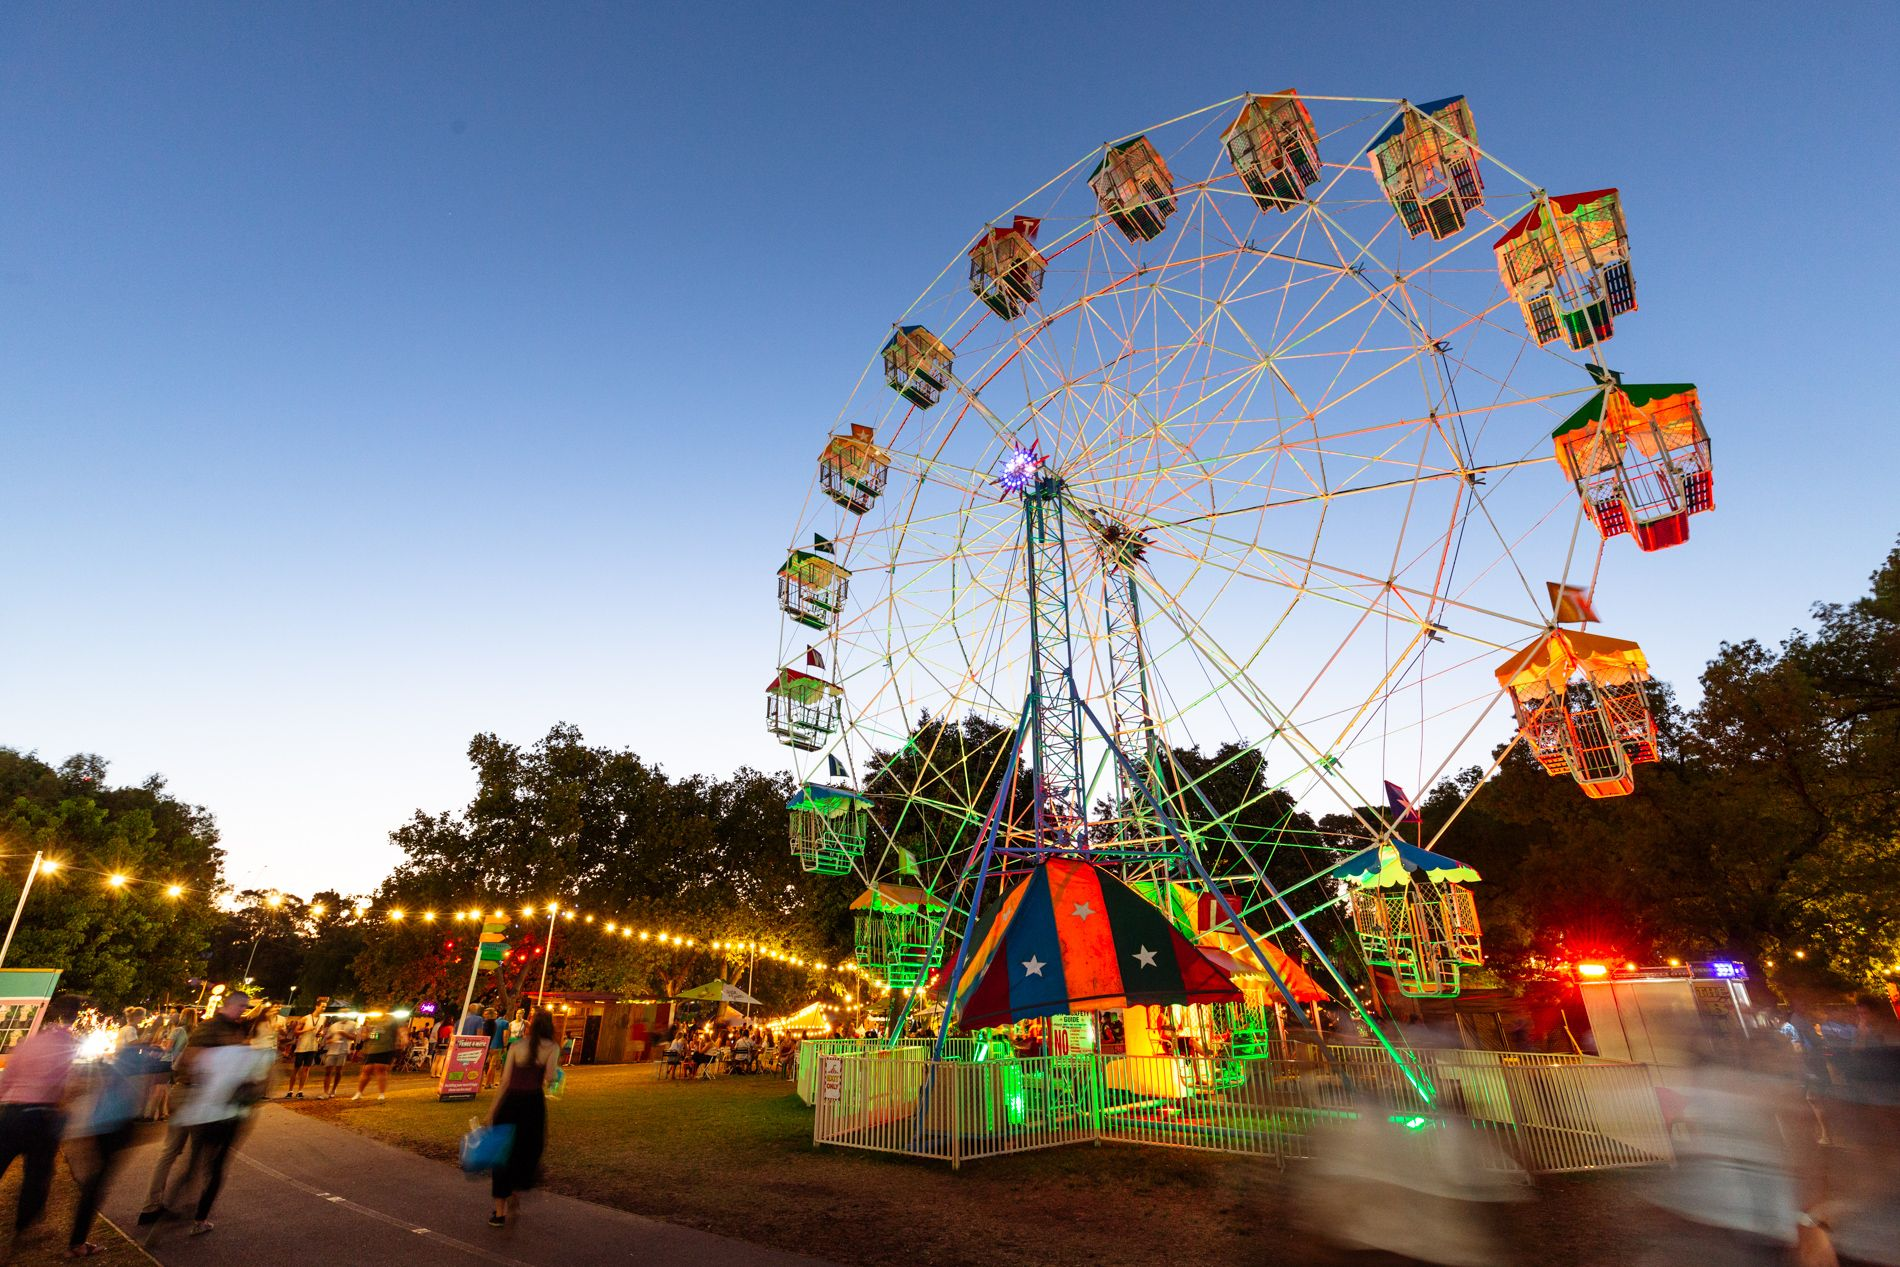 whattime does garden of unearthly delights open